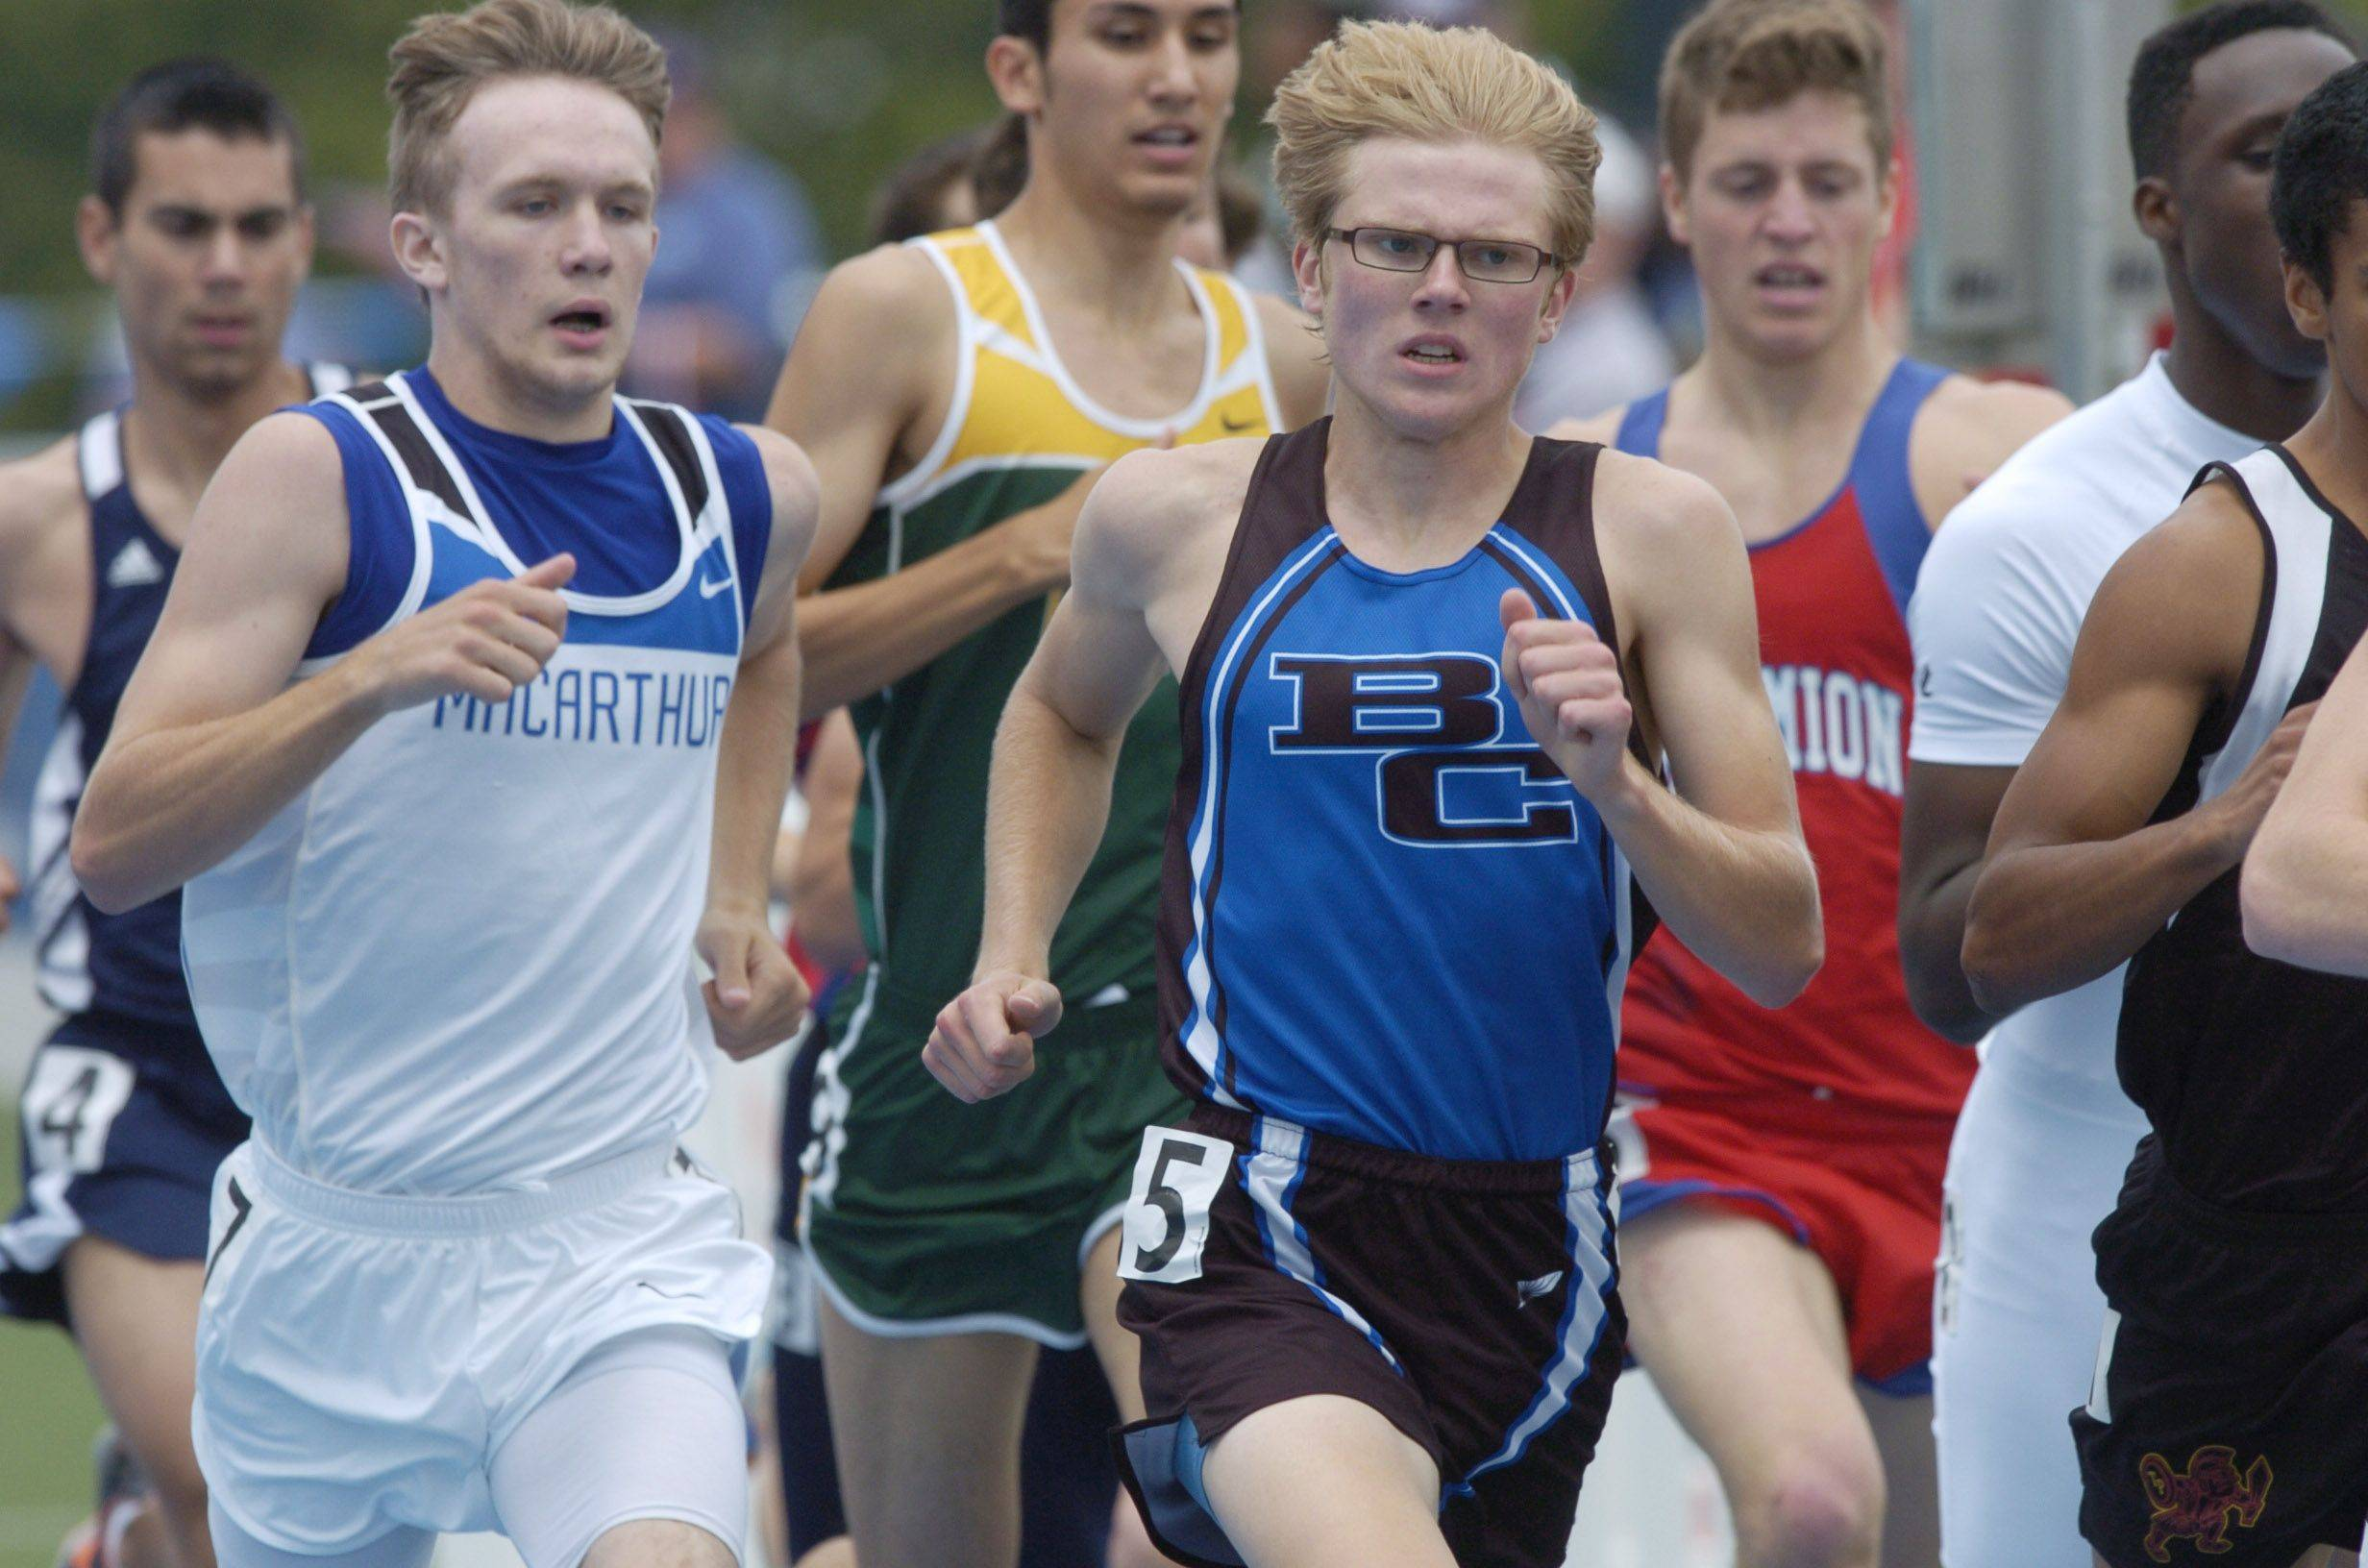 Burlington Central's Clint Kliem competes in the class 2A 800-meter run during the boys state track finals in Charleston Saturday.